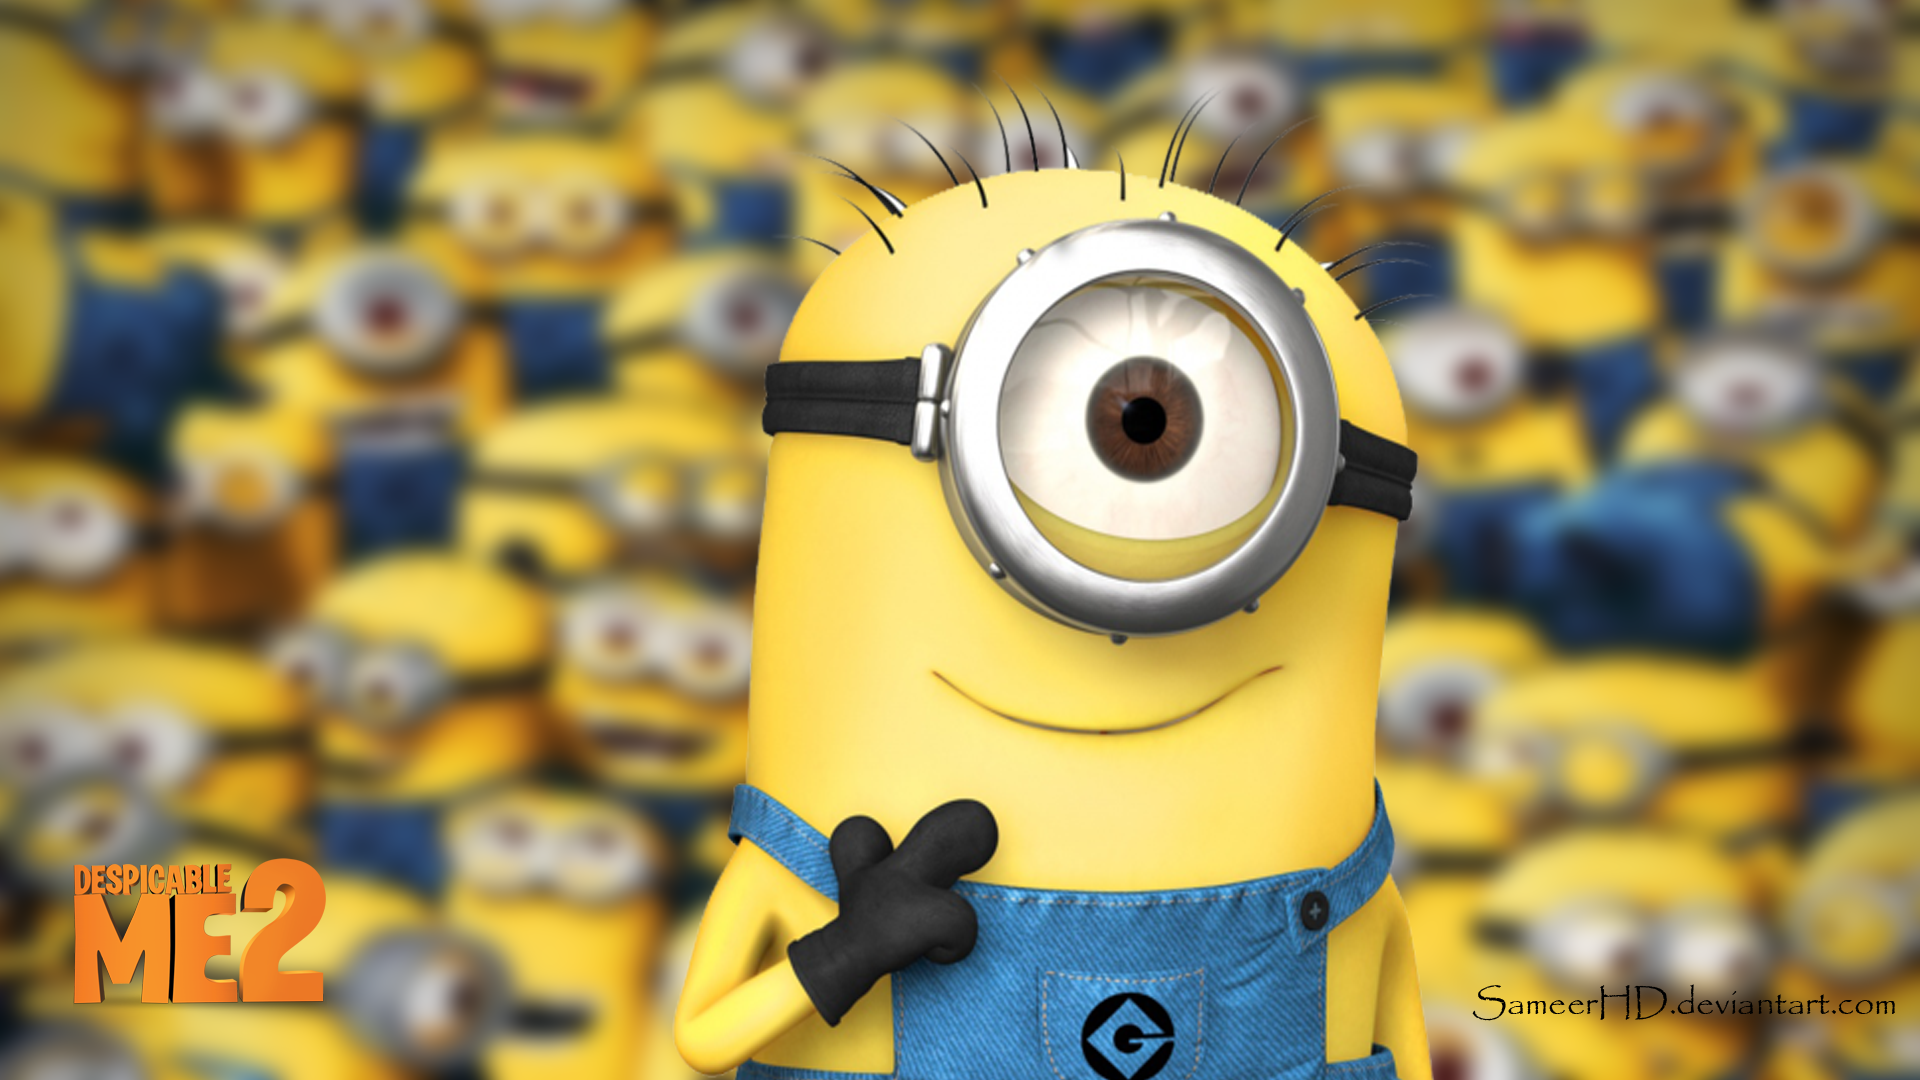 despicable me 2 minion wallpaper by sameerhd d80o8km